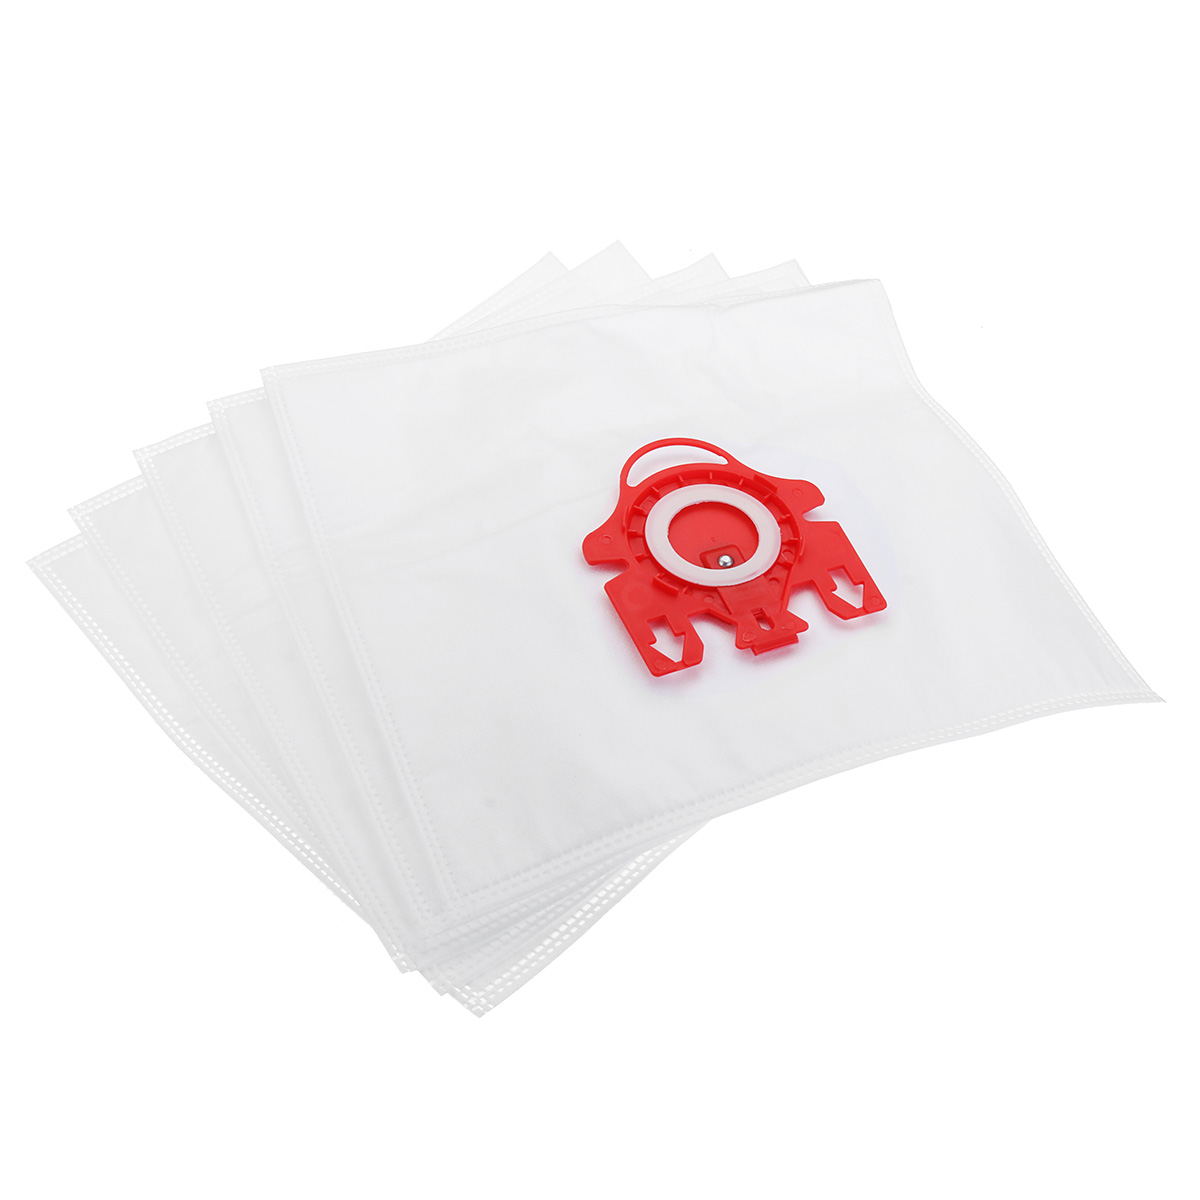 5pcs Vacuum Cleaner Bag with 2 Filter for Miele FJM Dual Layer Vacuum Cleaner